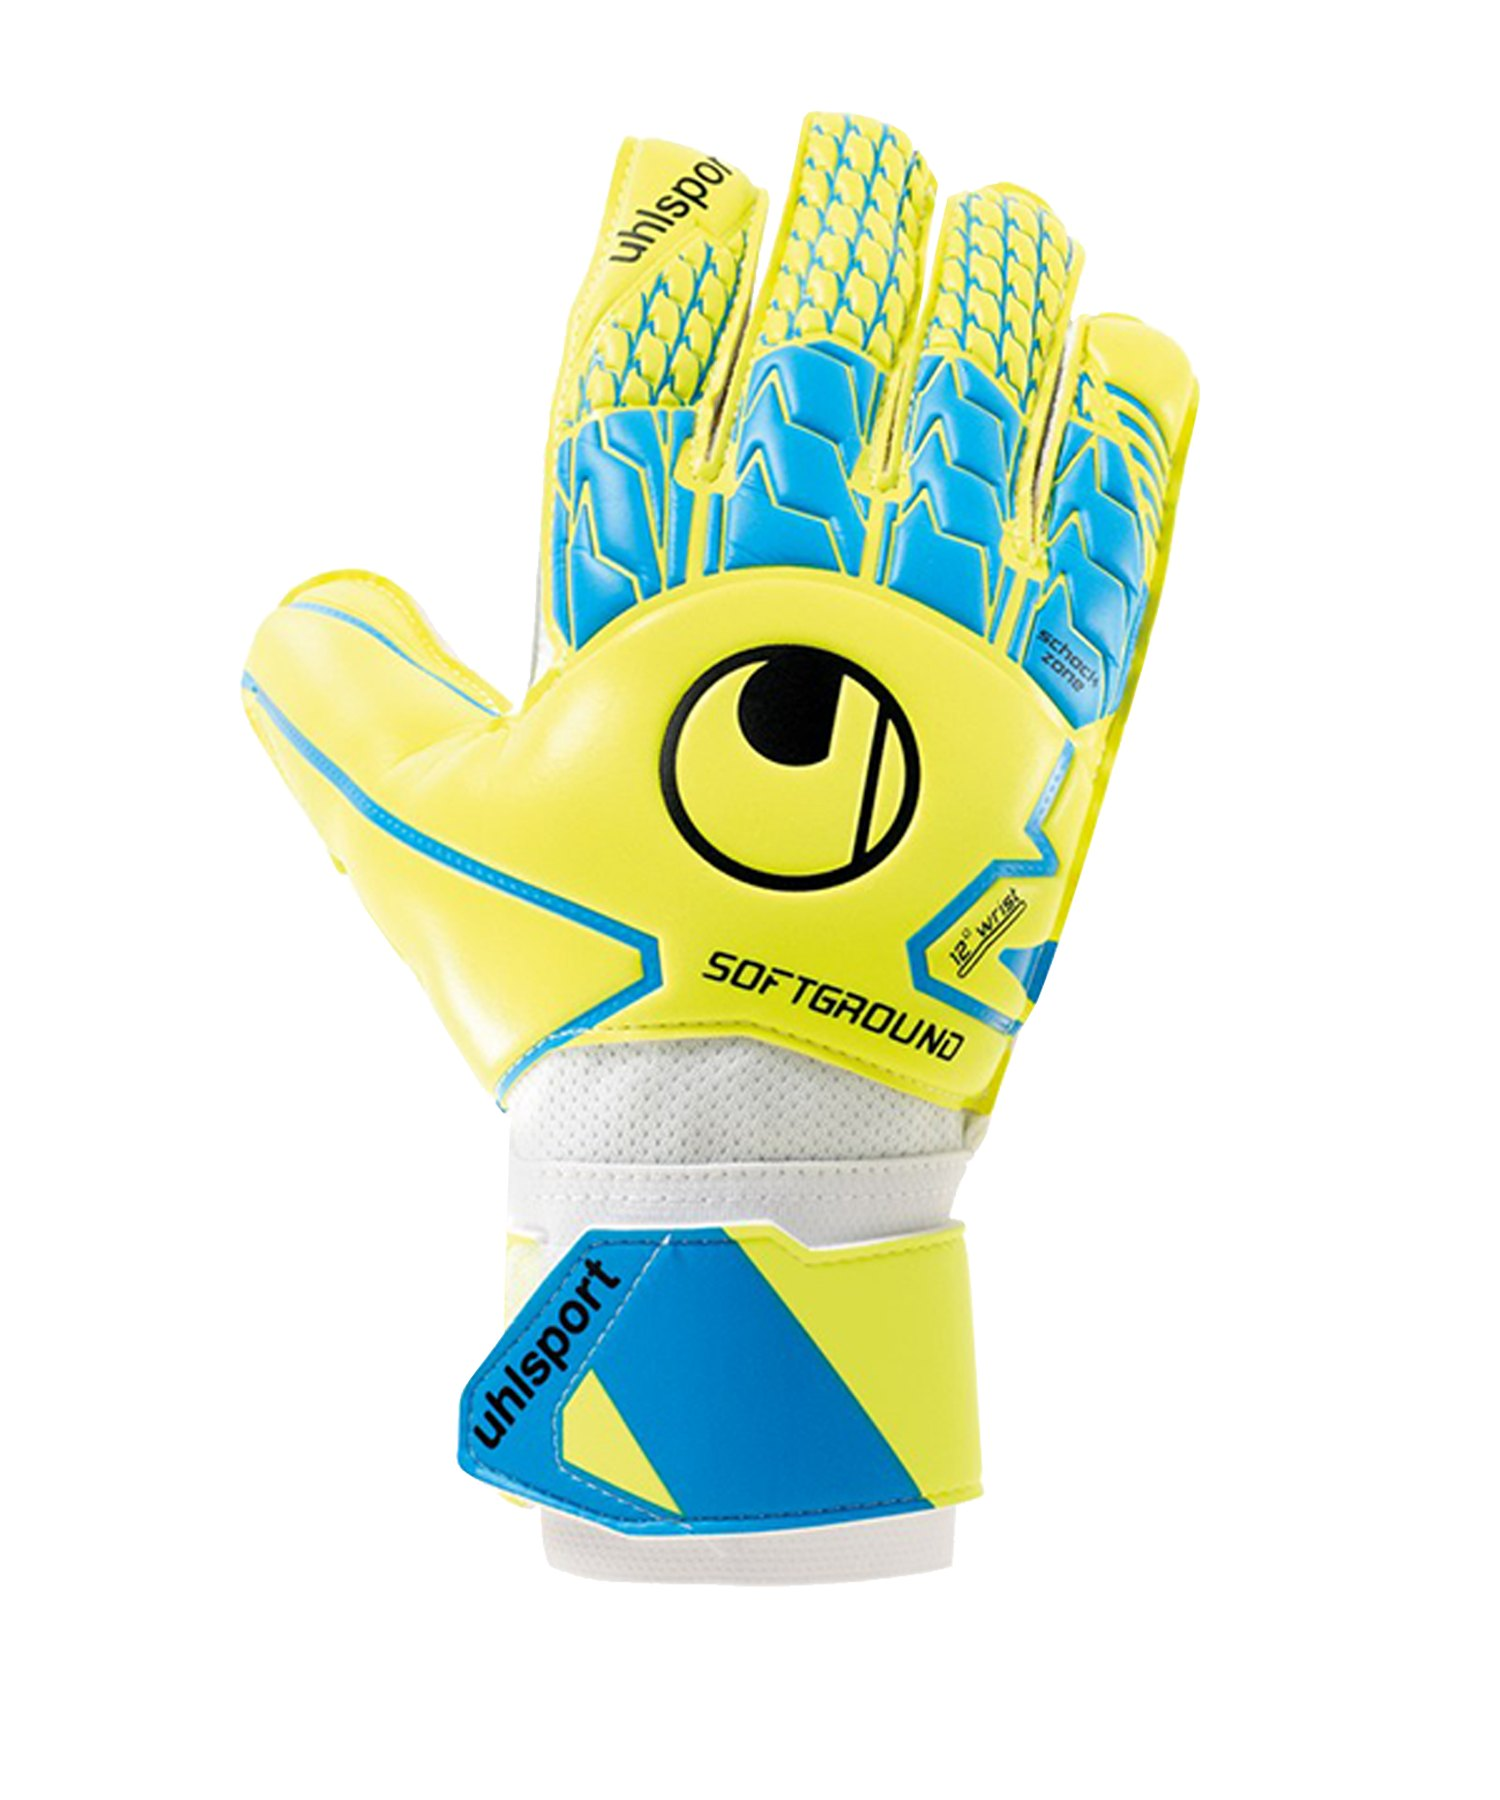 Uhlsport Soft Advanced Handschuh F01 - Gelb